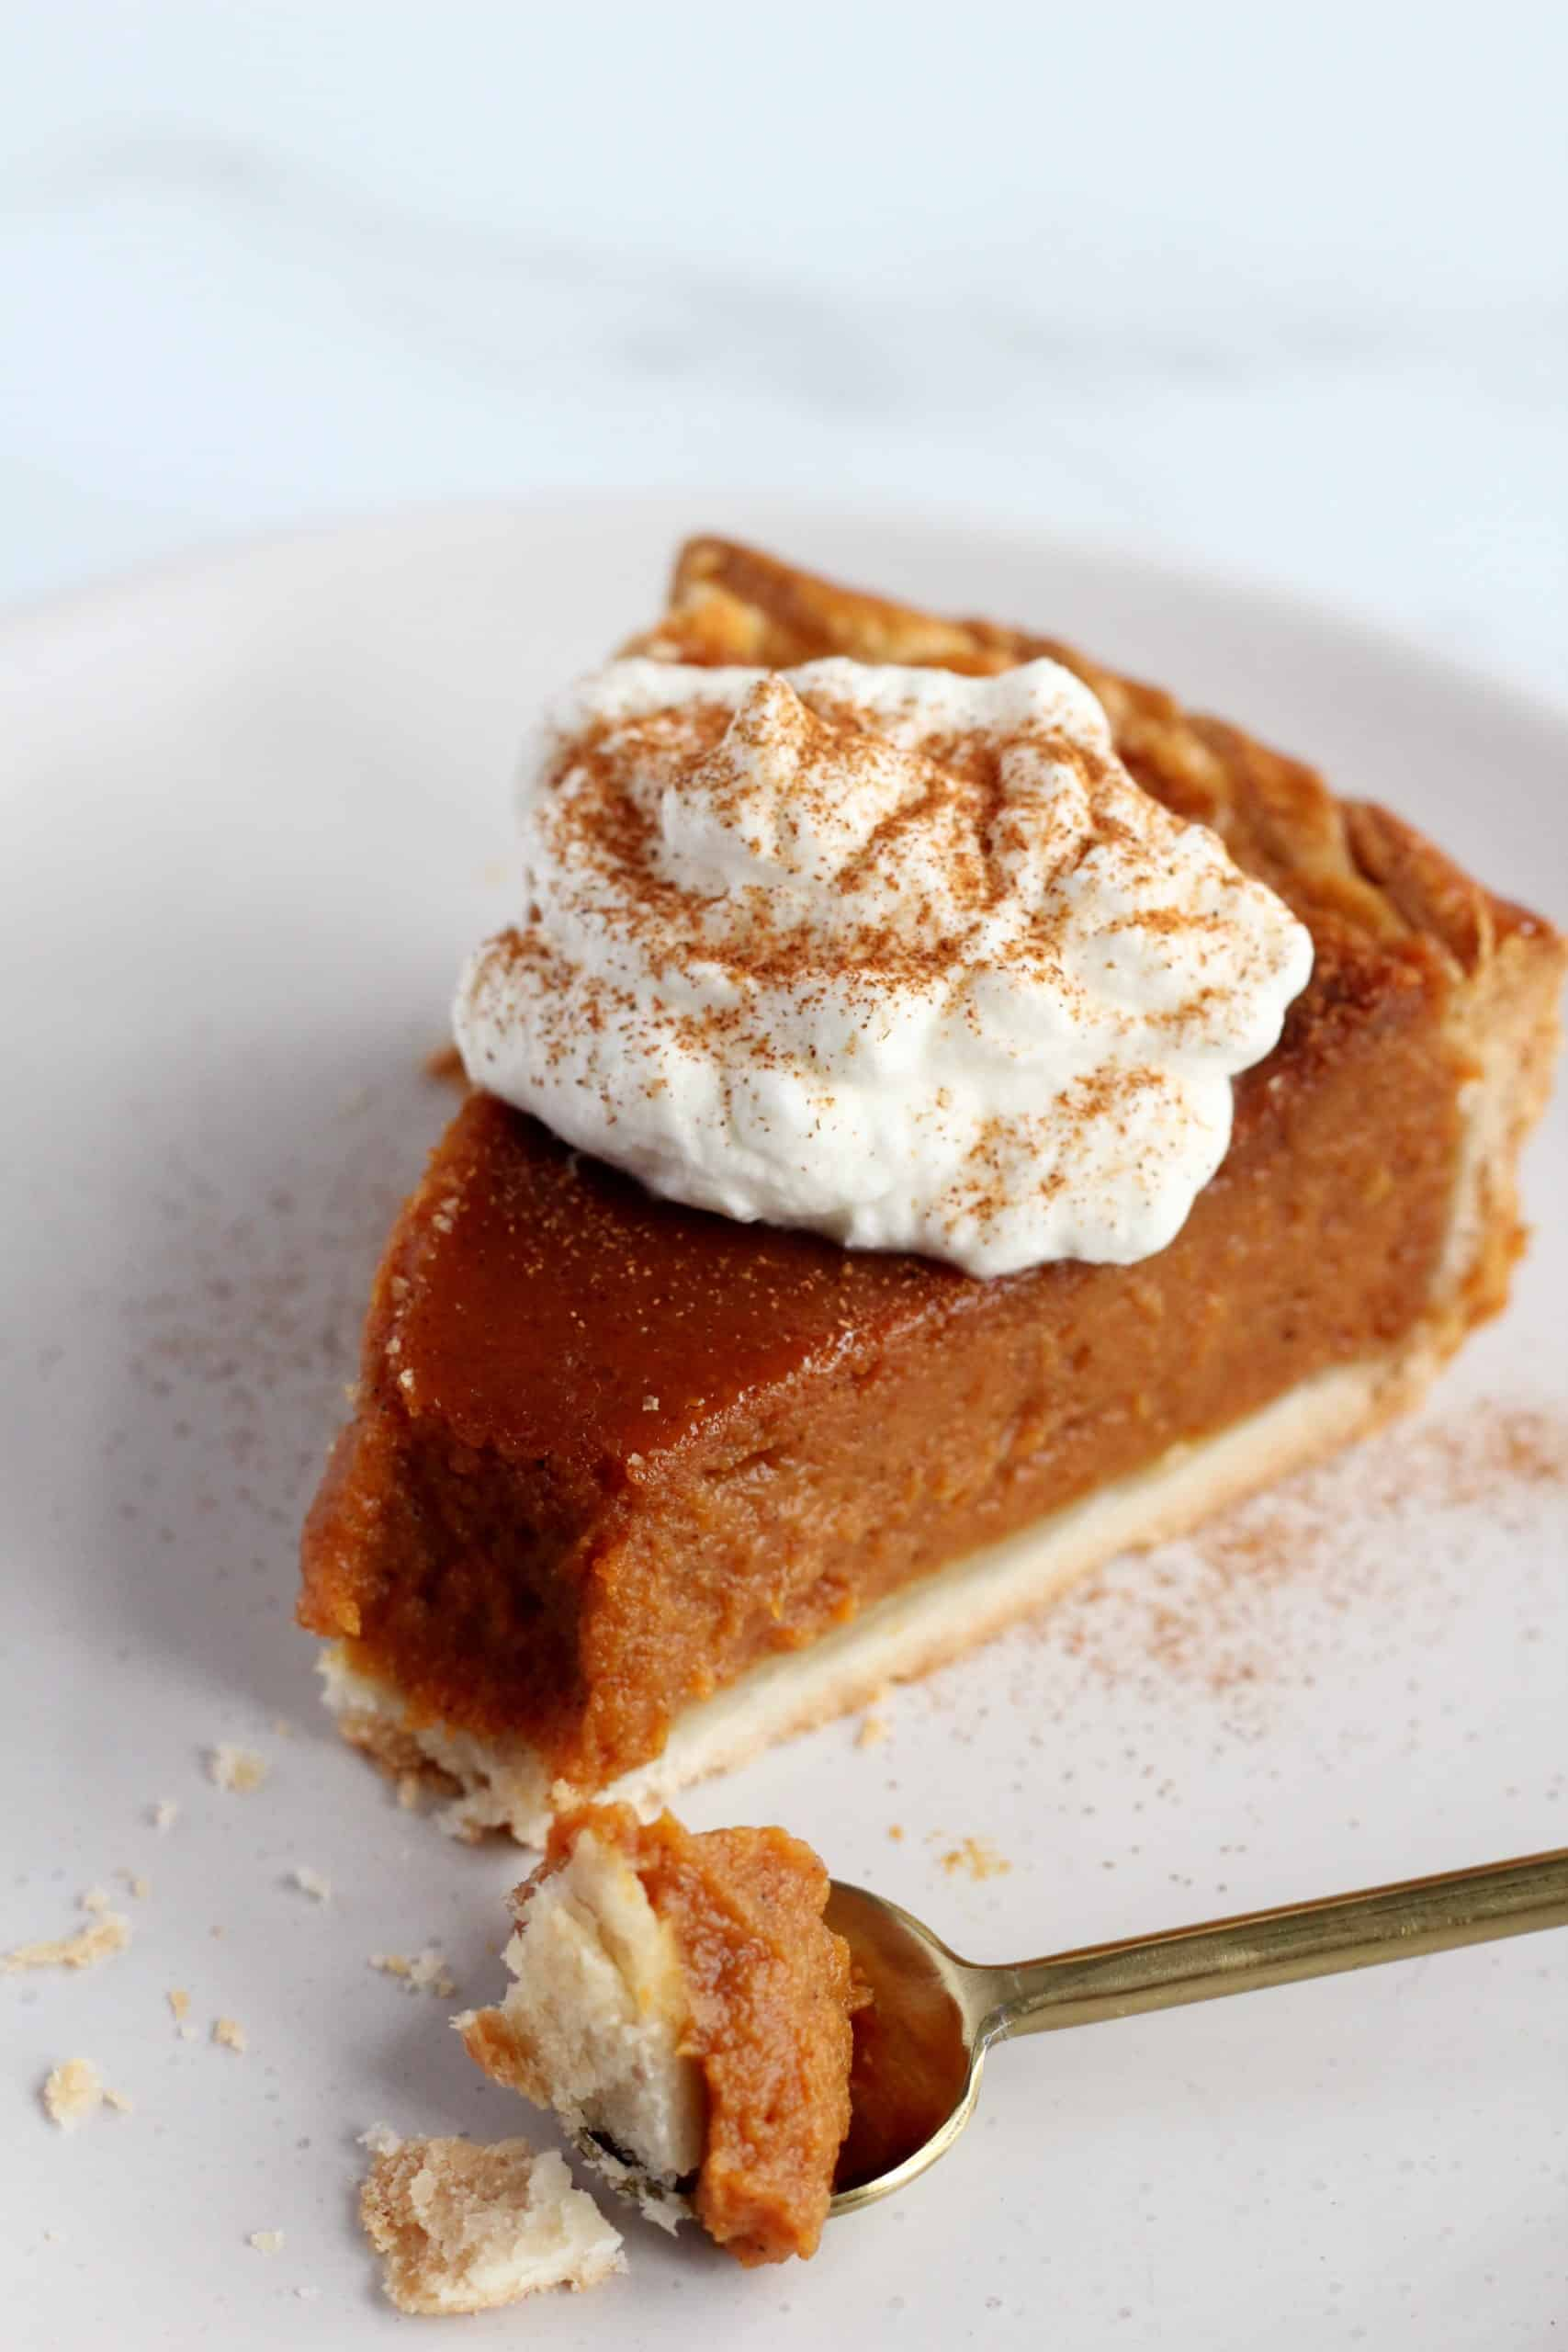 pumpkin pie placed on white surface with fall decoration